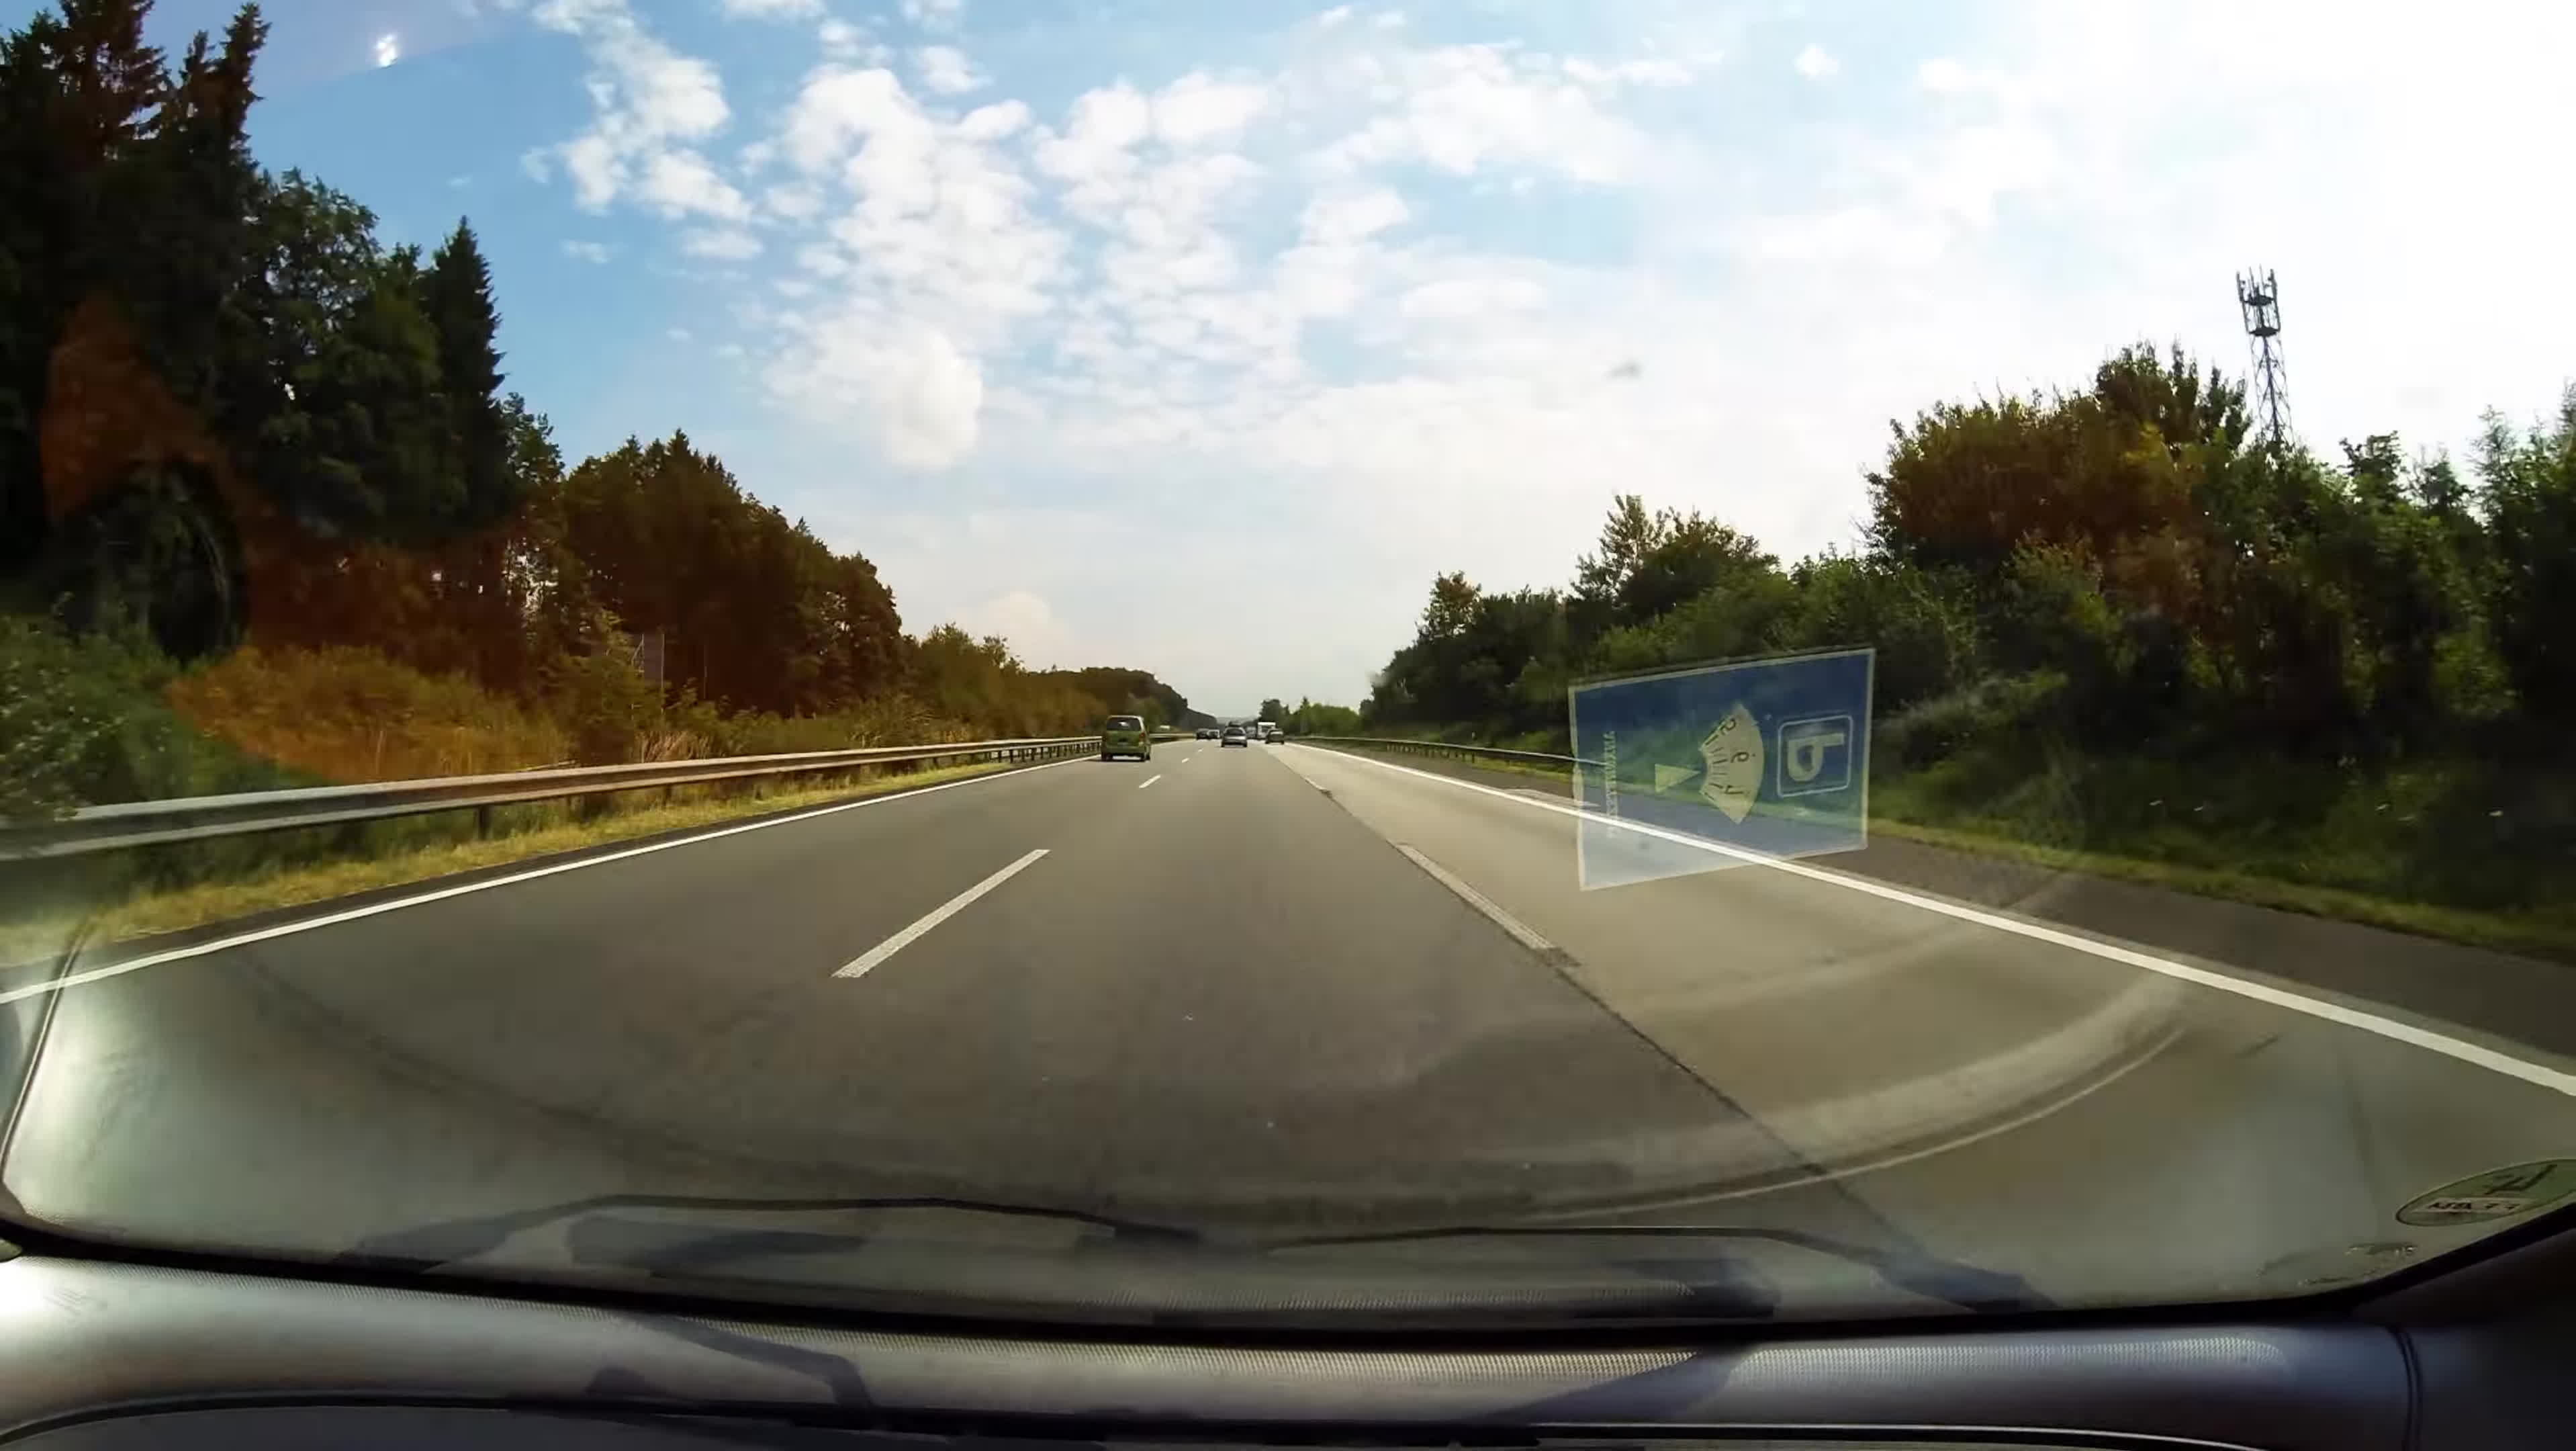 autobahn, oddlysatisfying, timelpase, Timelapse on the german Autobahn from Cologne to Frankfurt GIFs